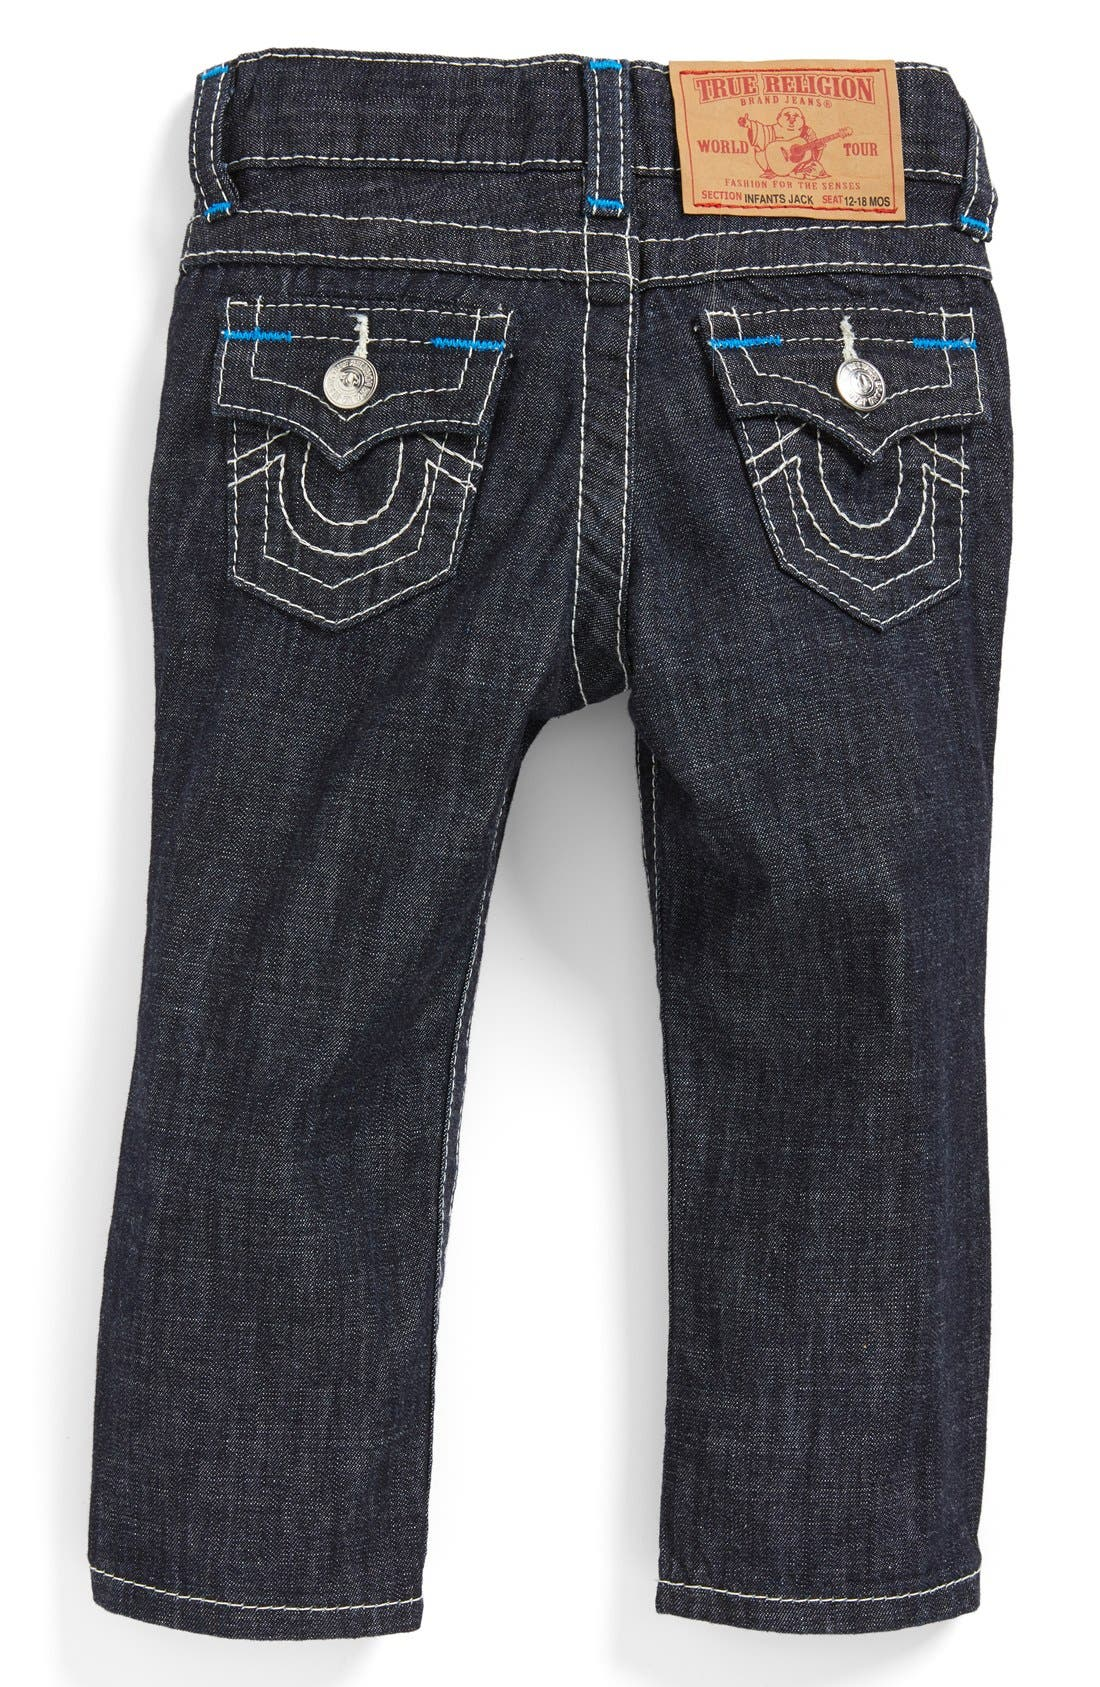 Main Image - True Religion Brand Jeans 'Jack' Slim Fit Jeans (Baby Boys)